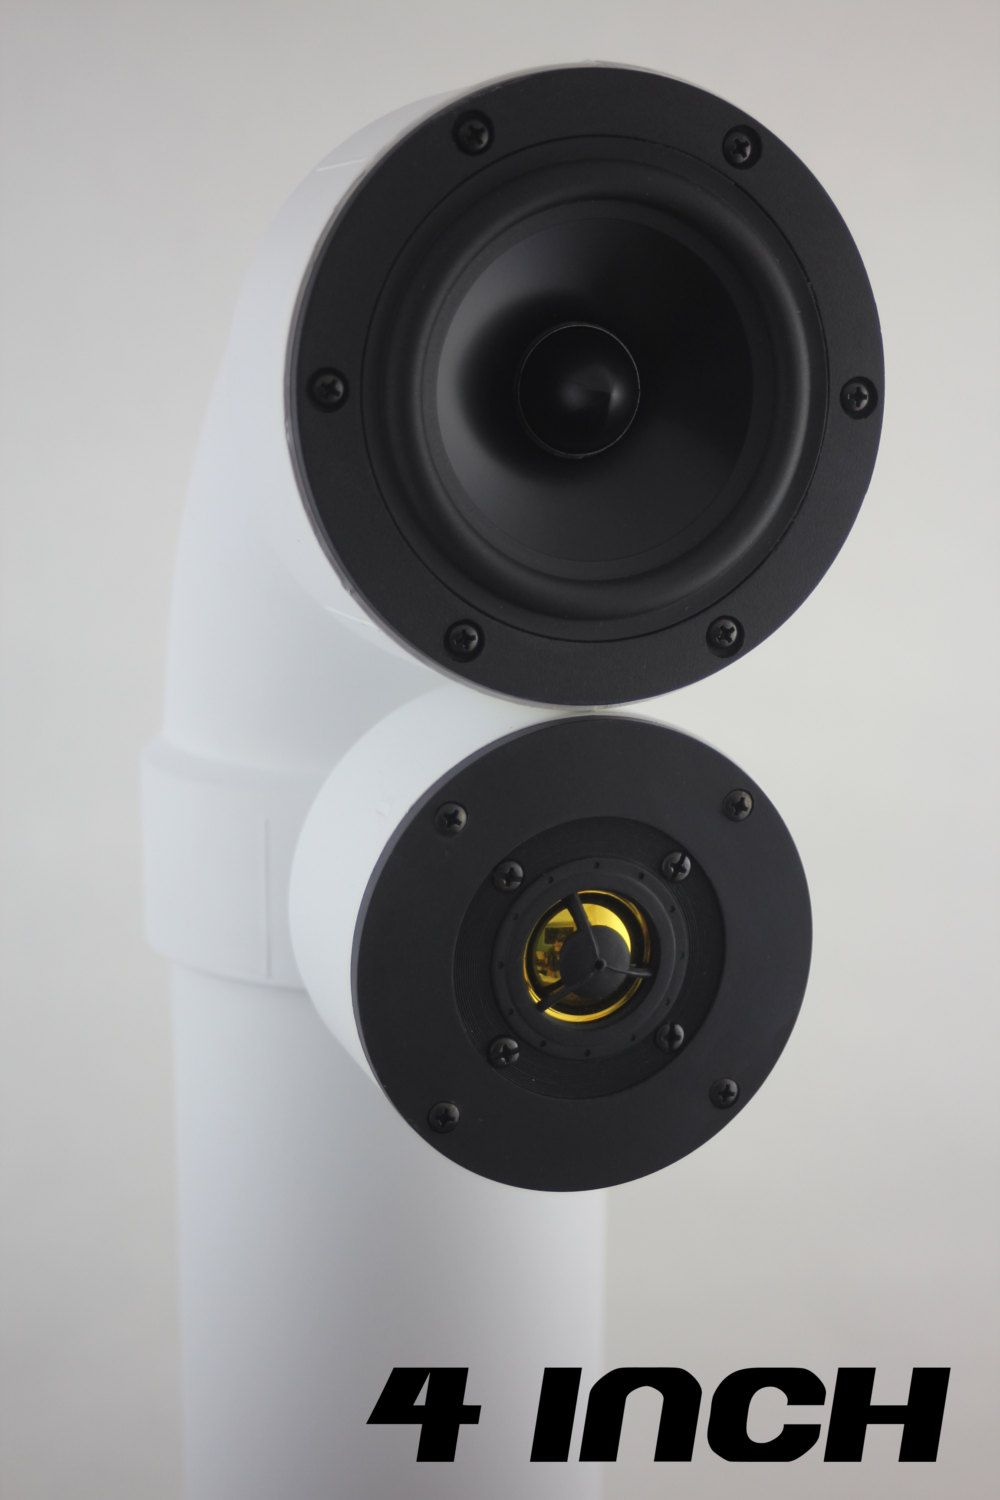 I Can Put Speakers In Just About Anything So Why Not Pvc Piping I Make Sure That Everything Sounds As Good As It Looks With Custom Designed Electronics